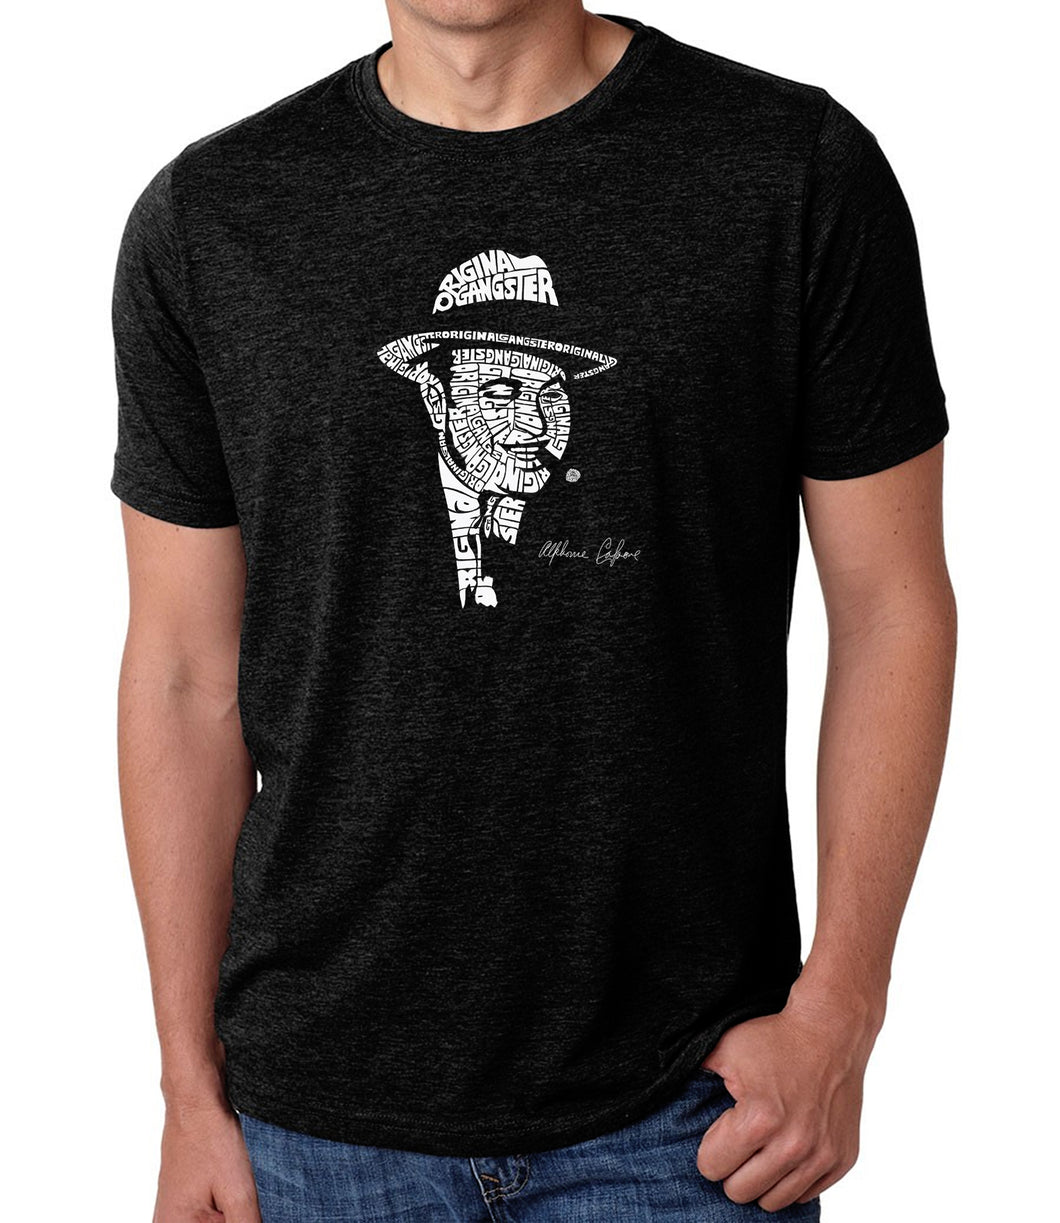 LA Pop Art Men's Premium Blend Word Art T-shirt - AL CAPONE-ORIGINAL GANGSTER